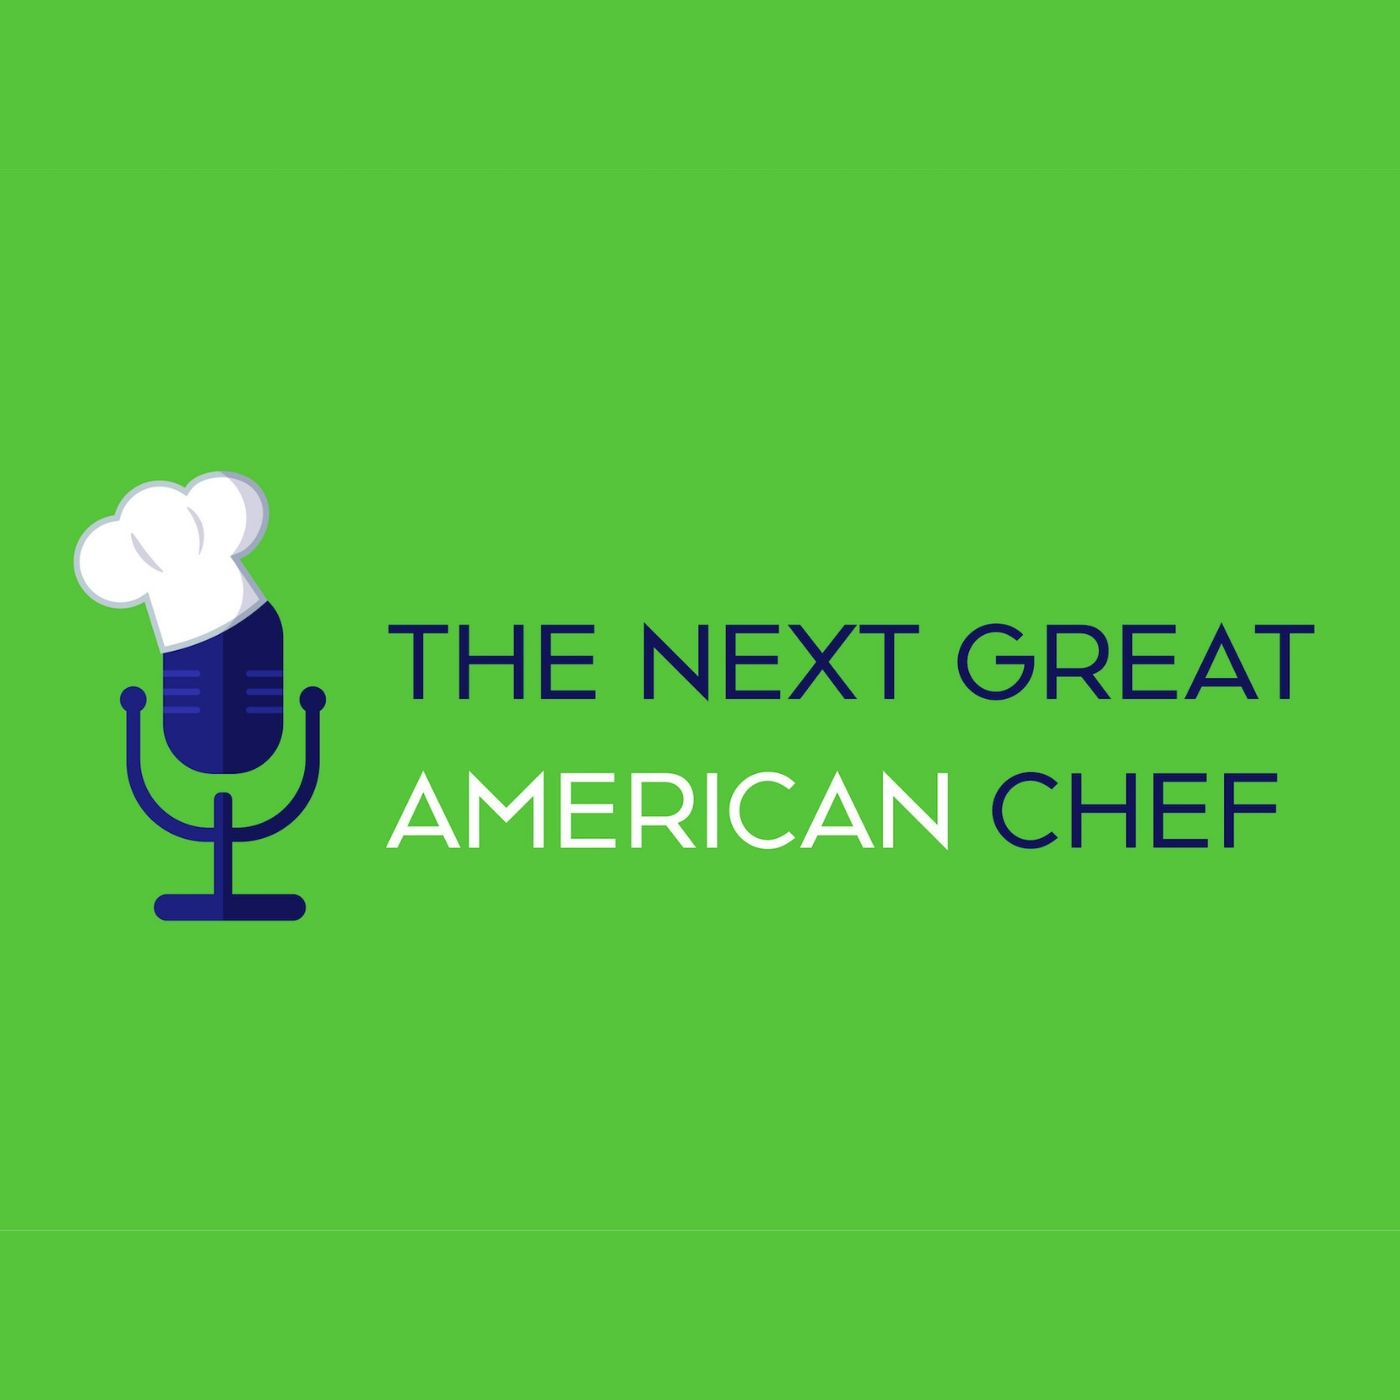 next-great-american-chef.jpg